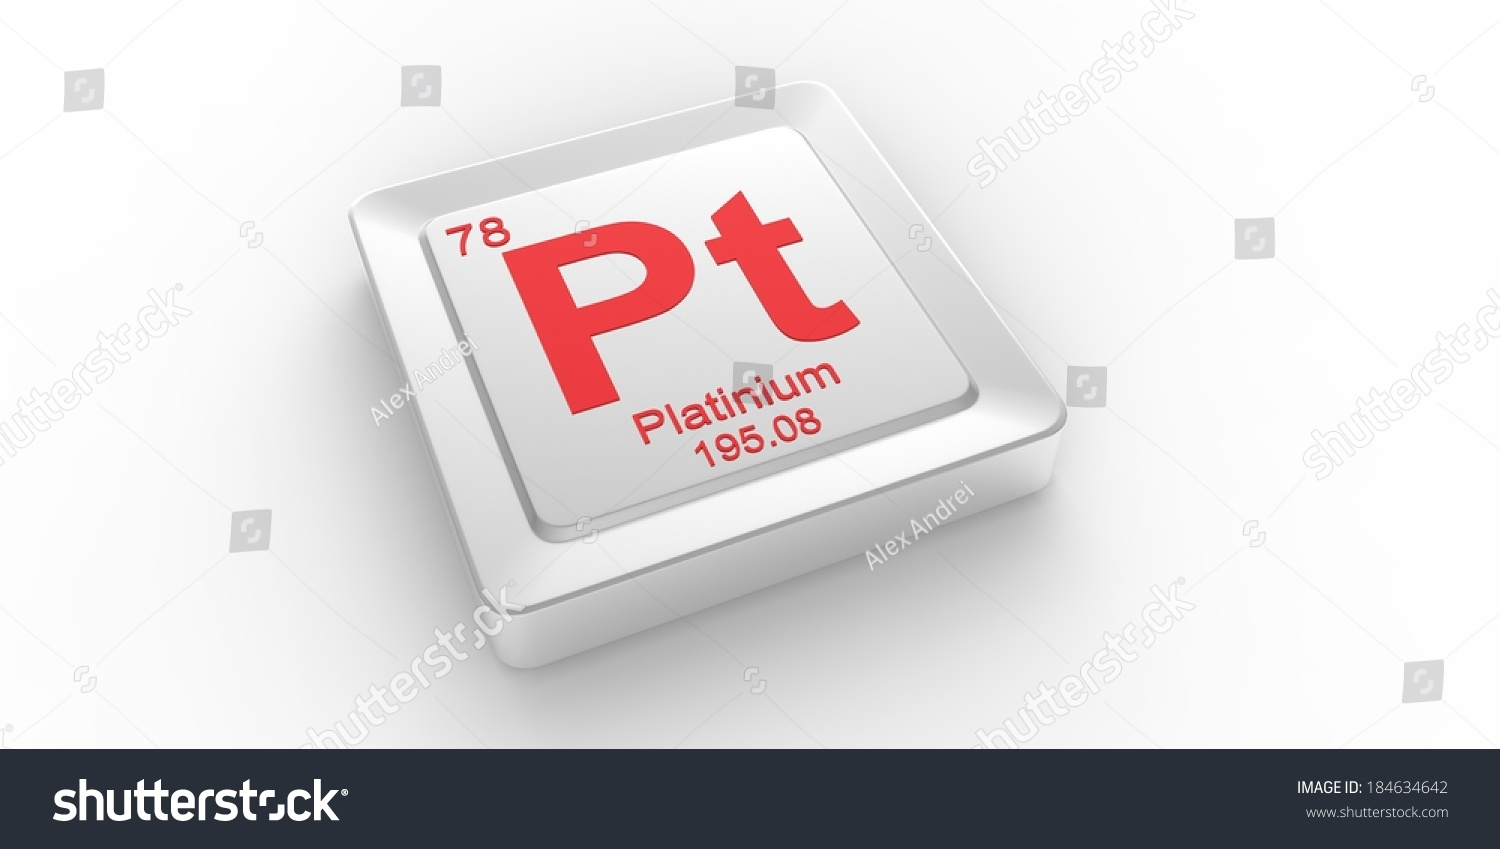 Pt Symbol 78 Material Platinum Chemical Stock Illustration 184634642